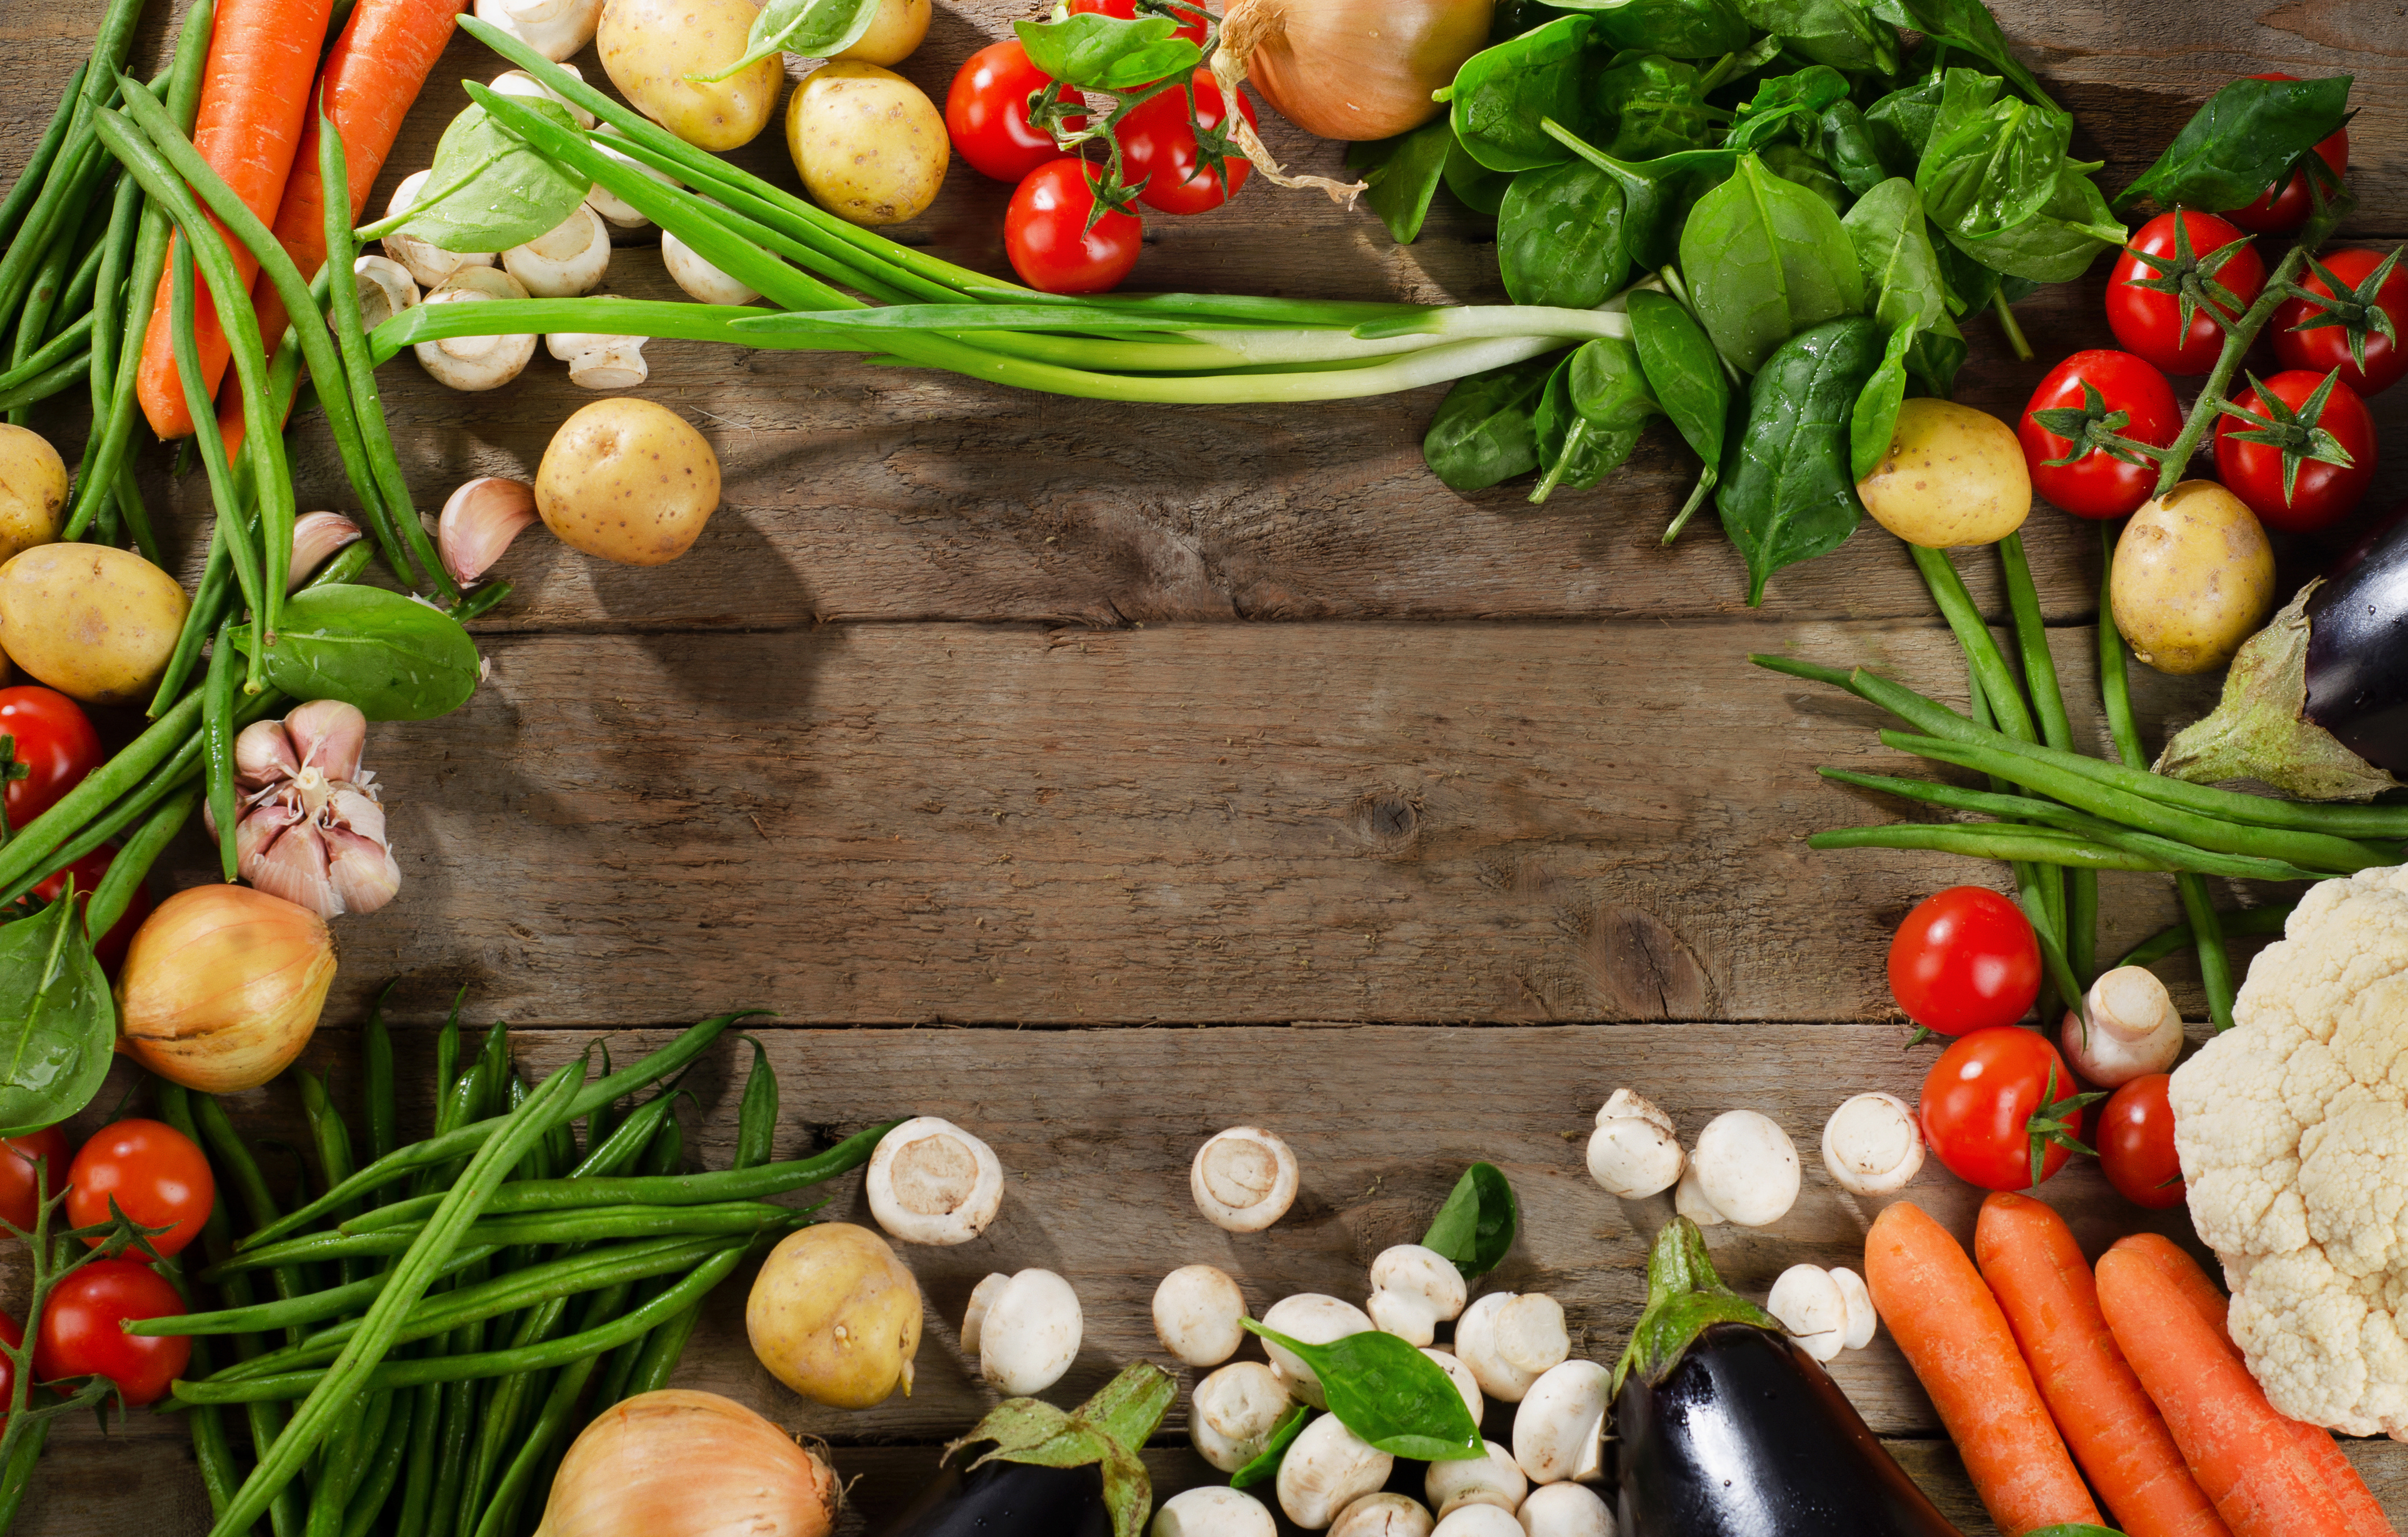 HOW IMPORTANT IS ORGANIC?